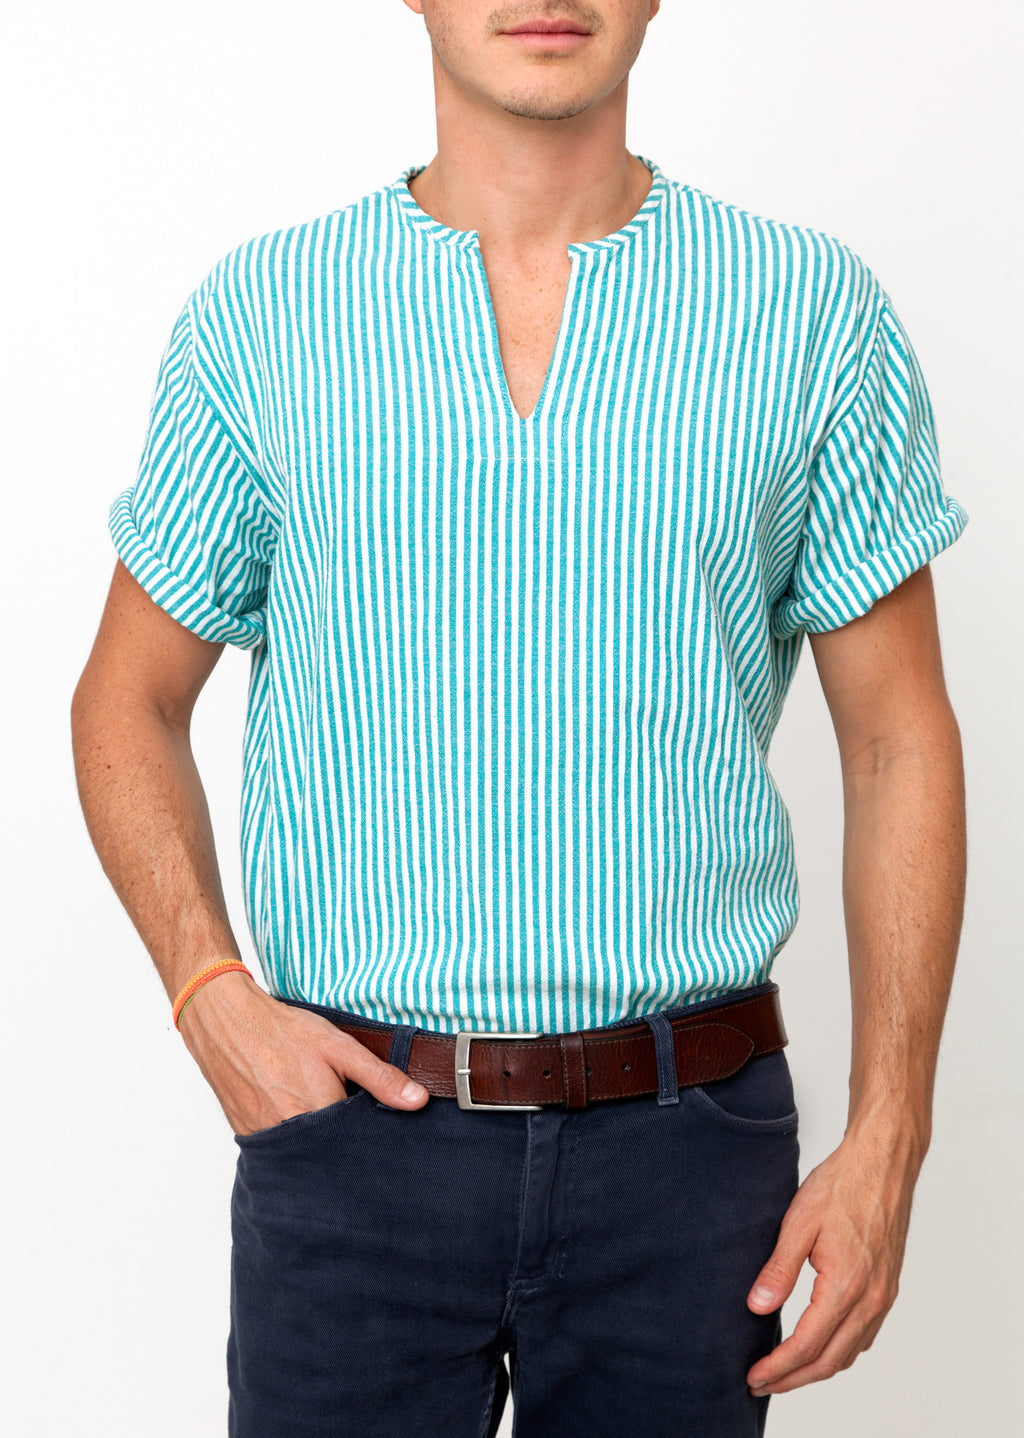 THE RIVIERA SHIRT IN GREEN